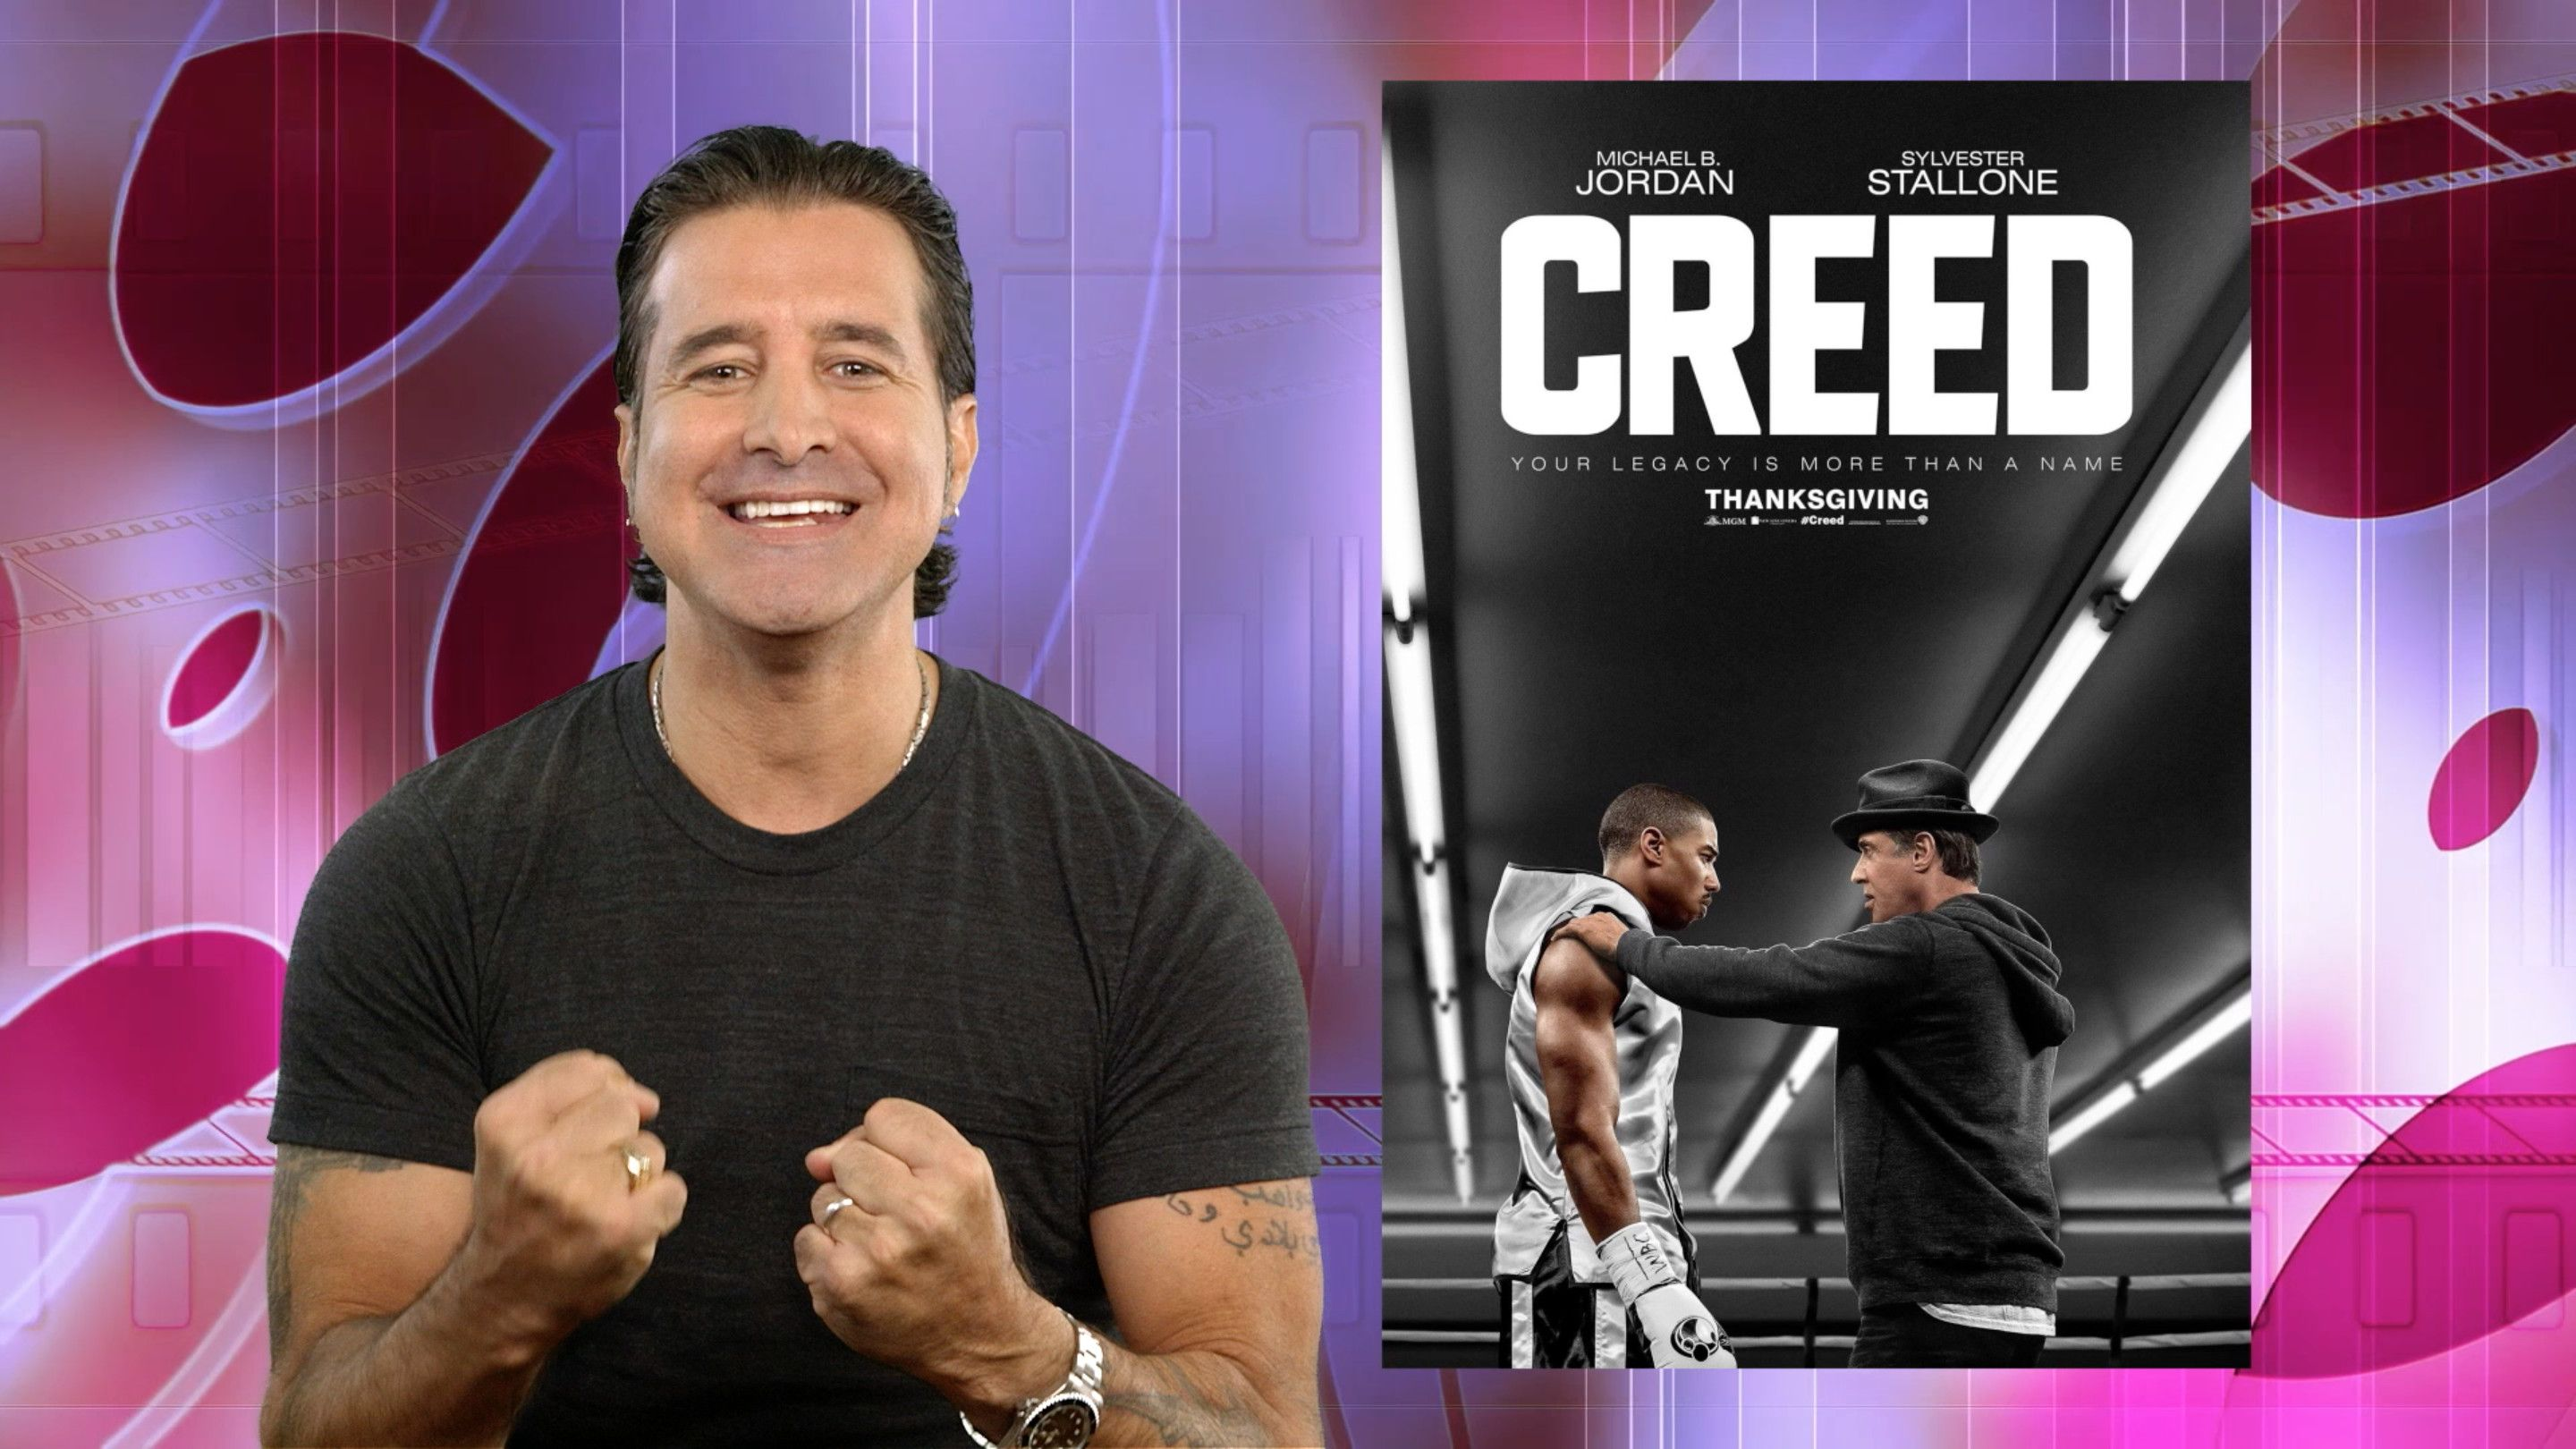 Creed frontman scott stapp reviews the new movie creed spoiler creed frontman scott stapp reviews the new movie creed spoiler alert it kristyandbryce Images